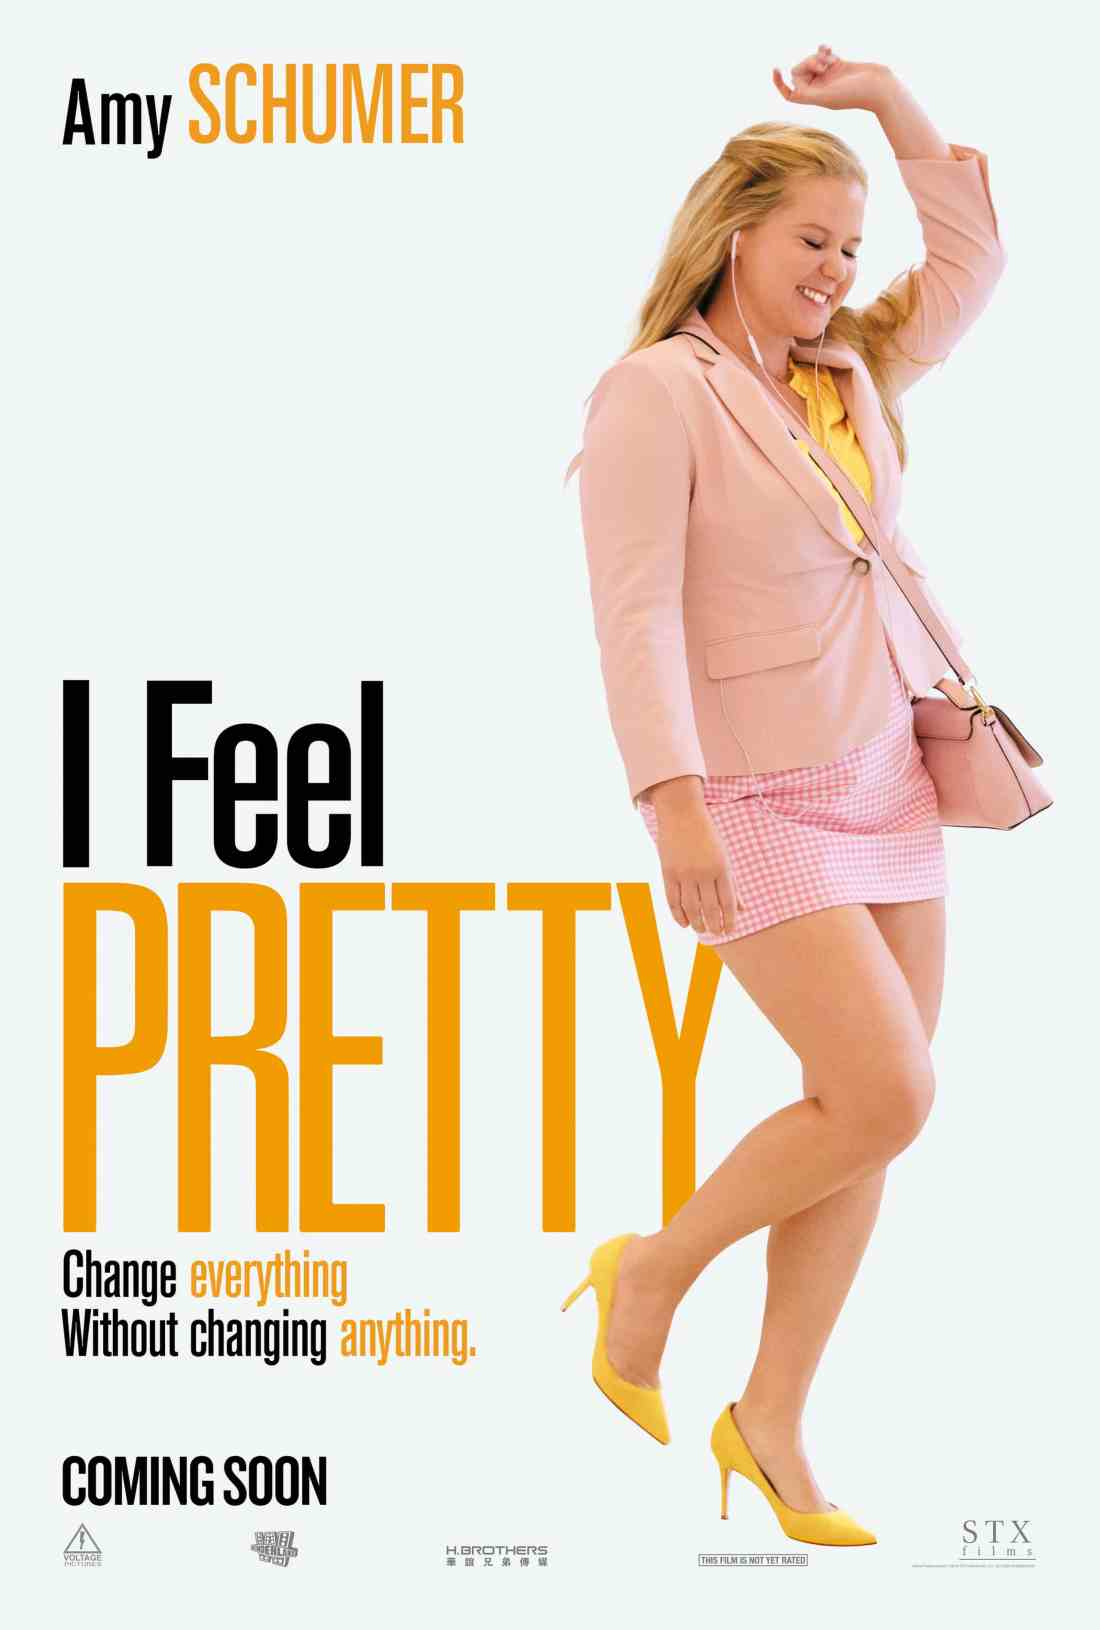 Amy Schumer stars in this 2018 Spring Comedy I Feel Pretty. In theaters everywhere April 20th, 2018.